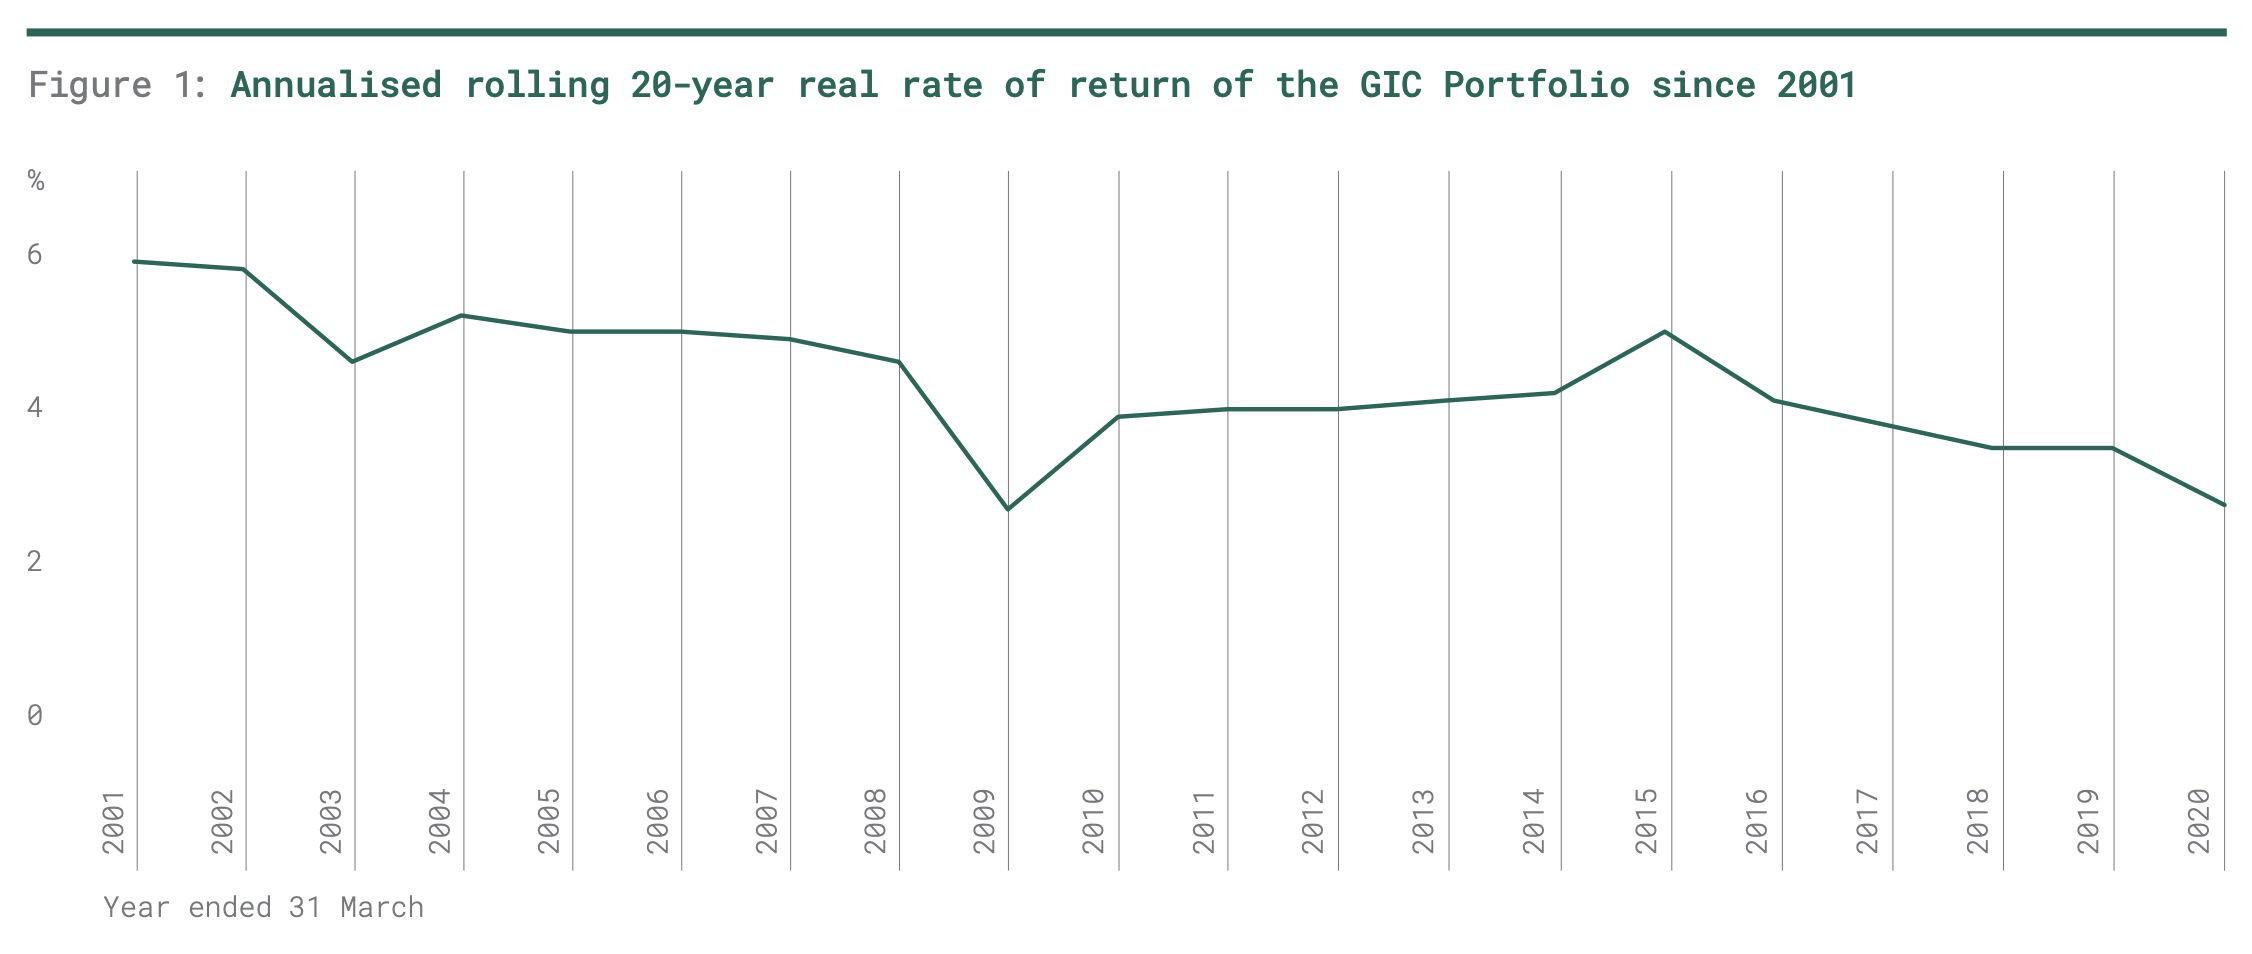 GIC Singapore Annualised rolling 20 year real rate of return of the GIC portfolio since 2001